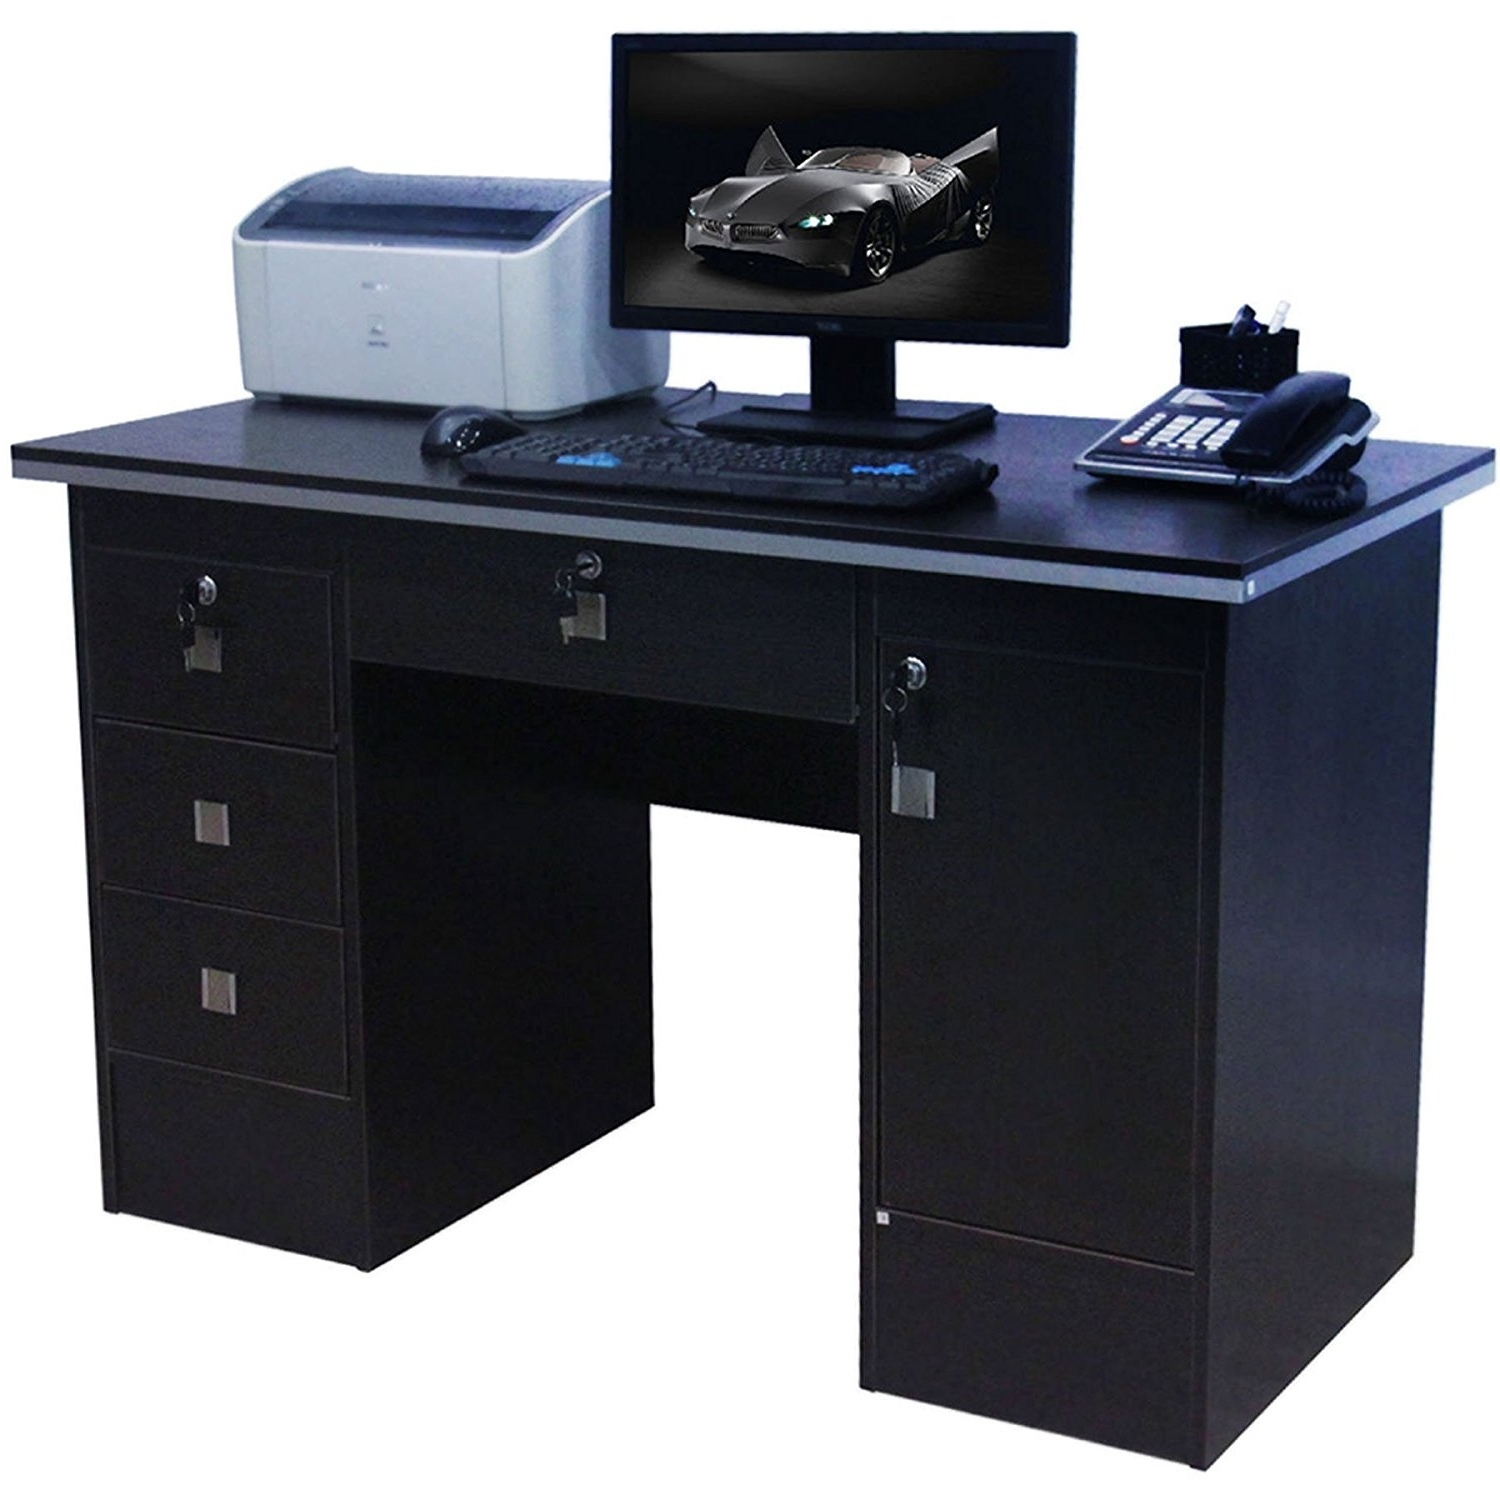 Preferred Computer Desk Black – Eulanguages Regarding Black Computer Desks (View 16 of 20)